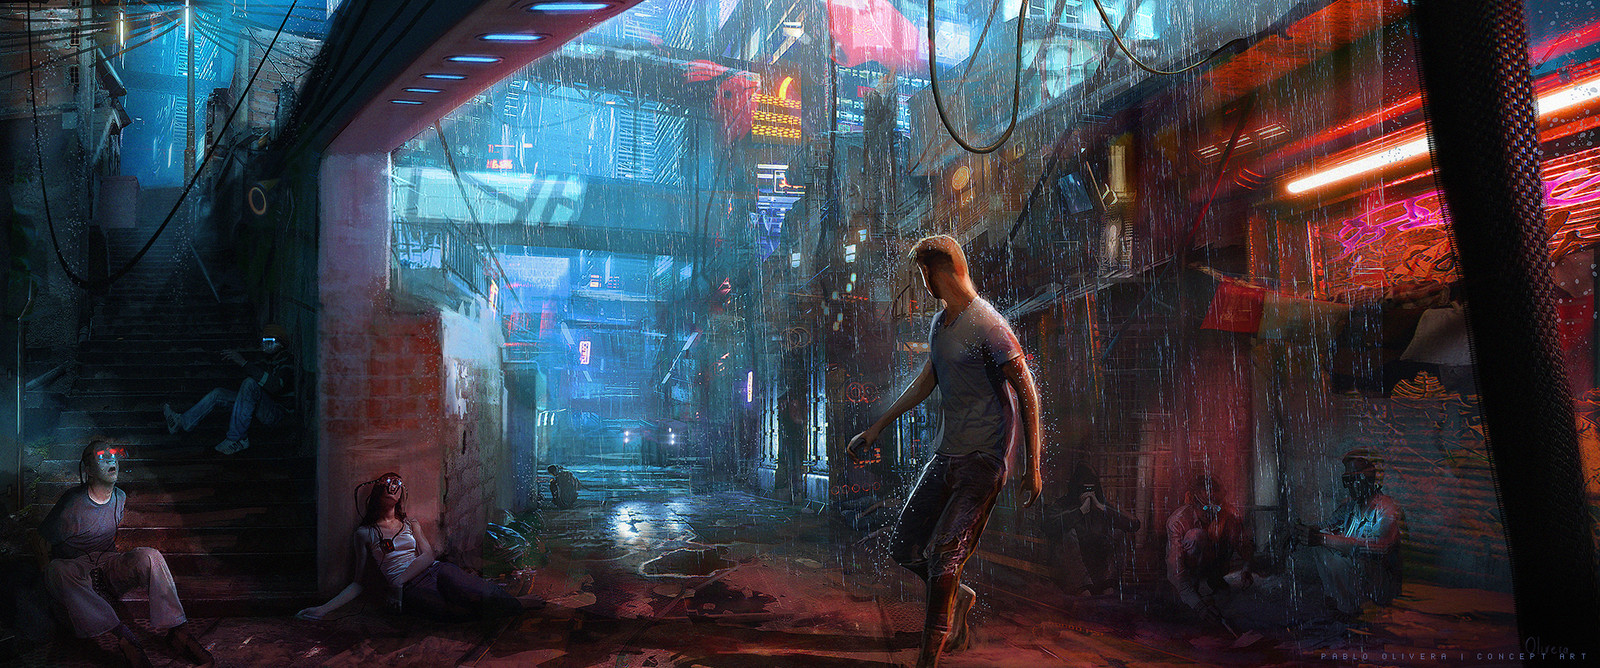 UNCANNY VALLEY - Key Art Illustration